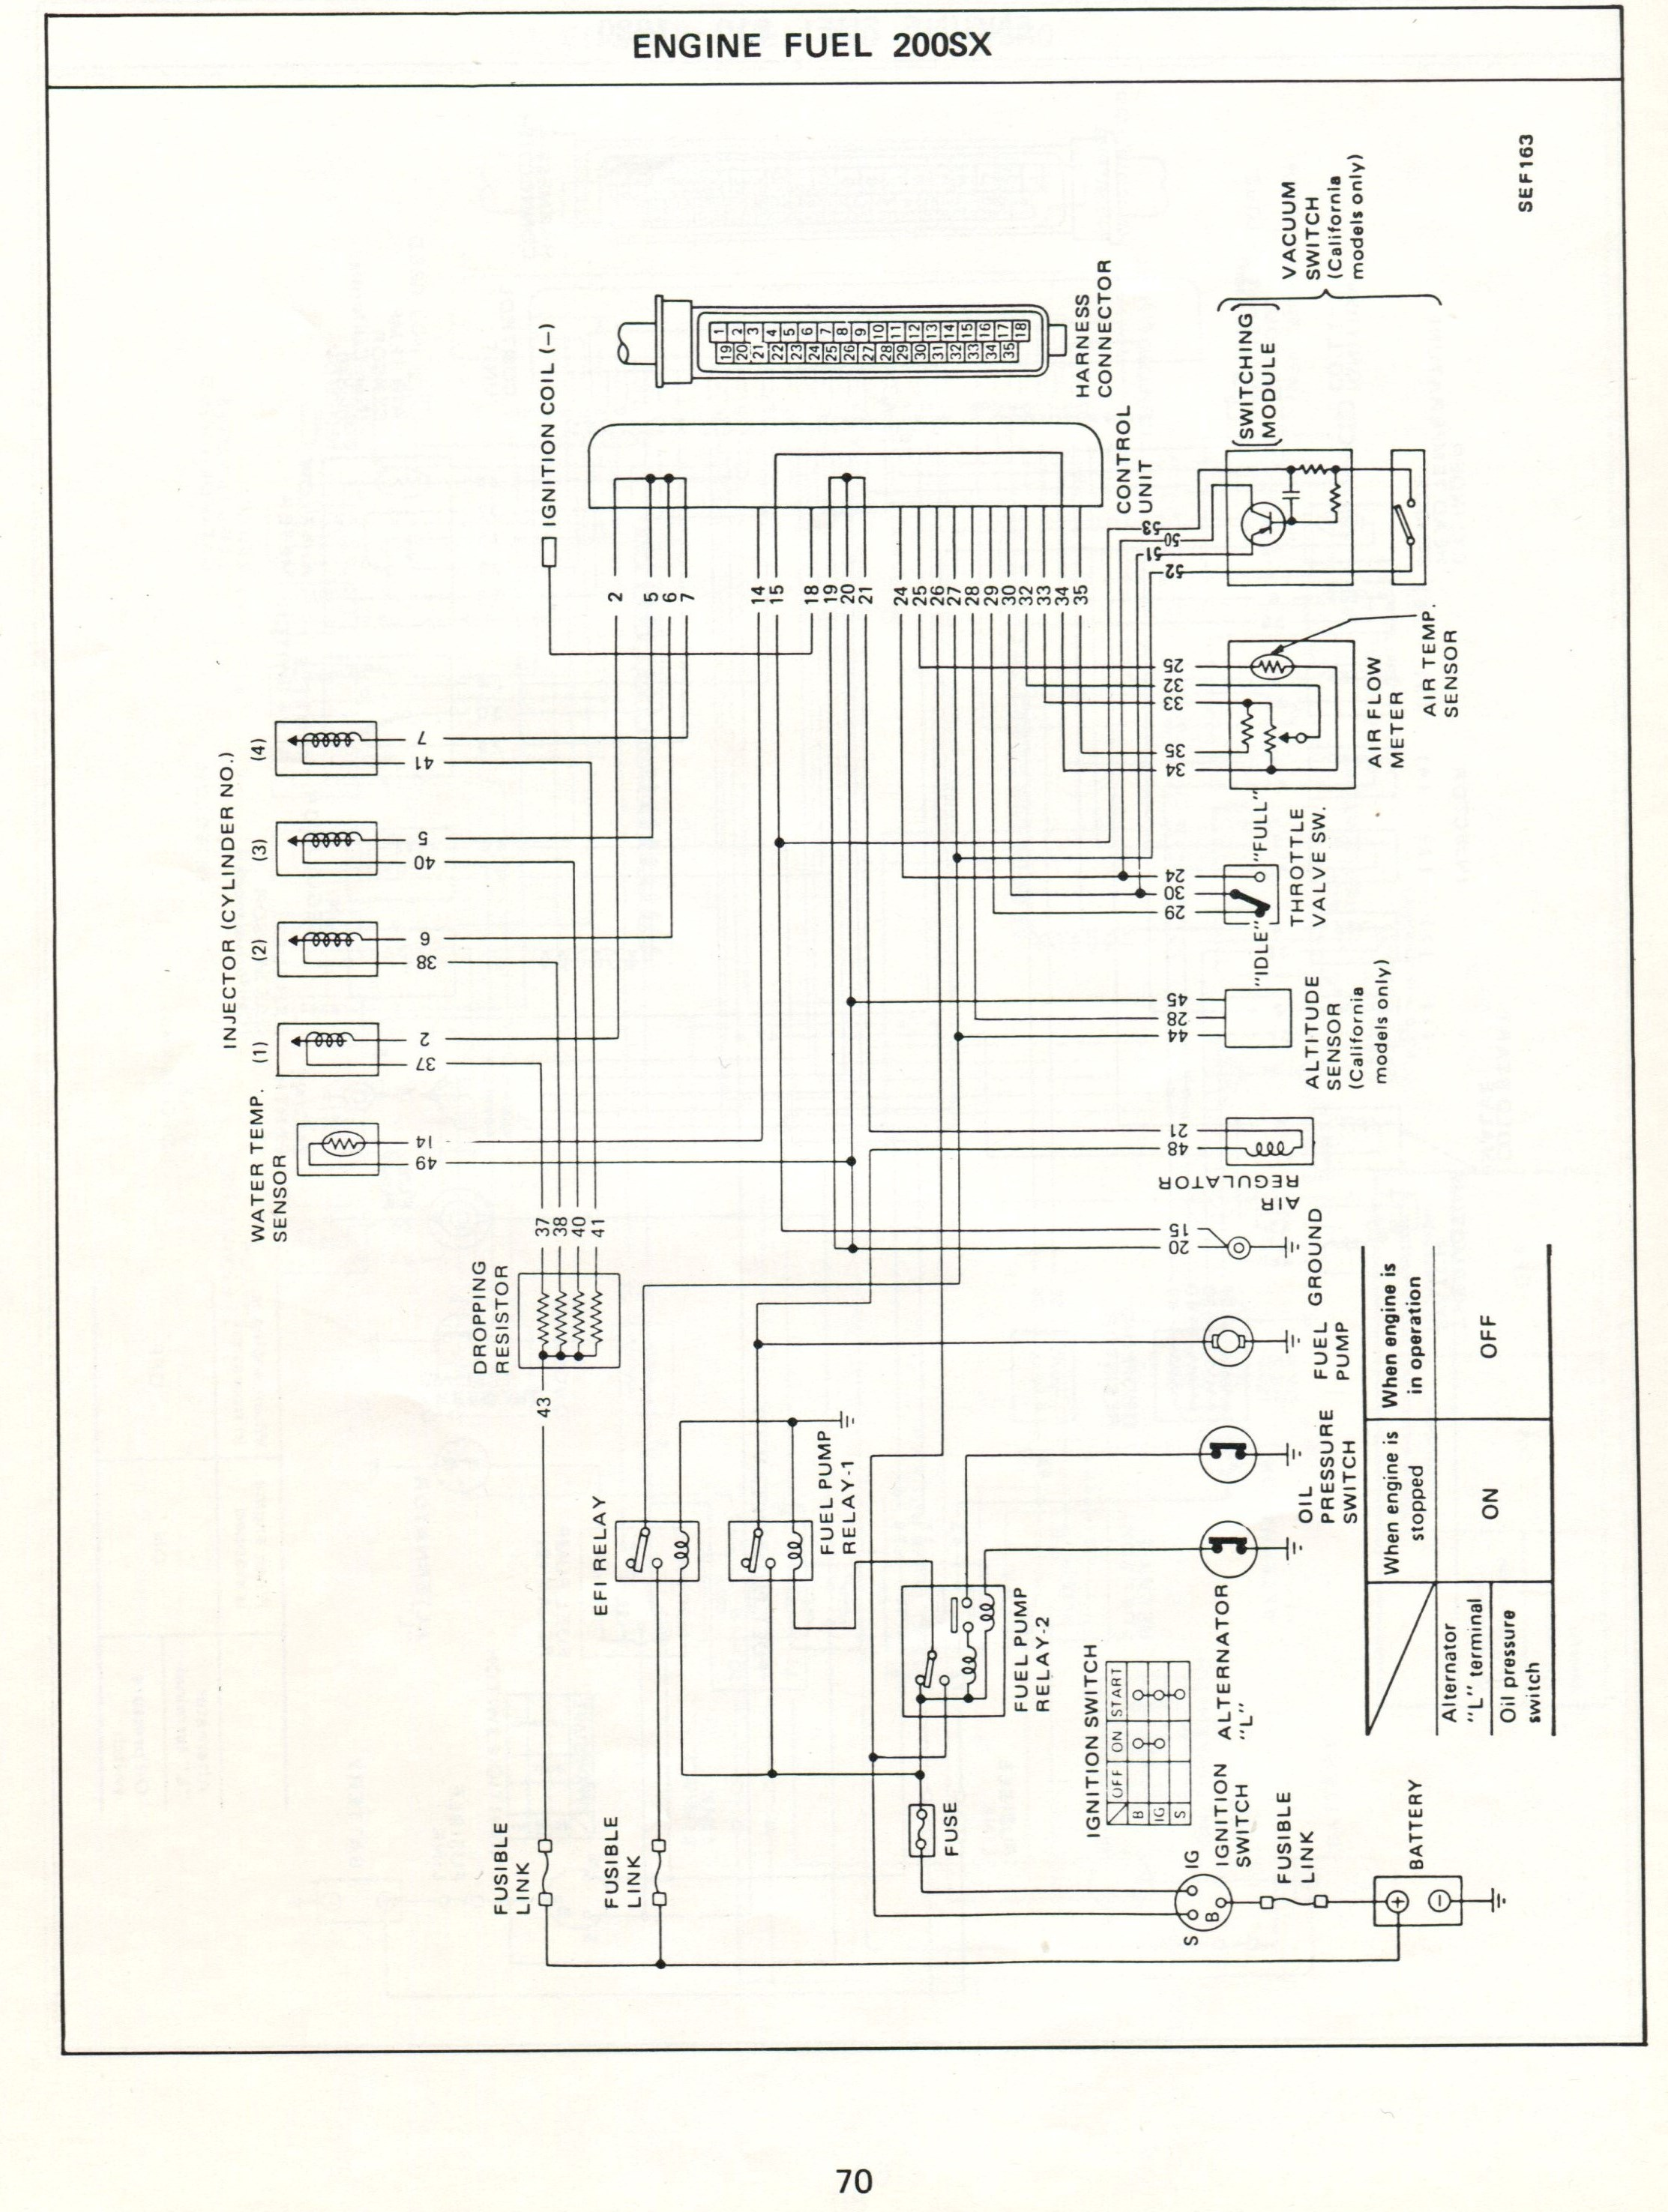 datsun_fuel_injection 75 datsun electronic fuel injection wiring diagrams 280zx alternator wiring diagram at fashall.co